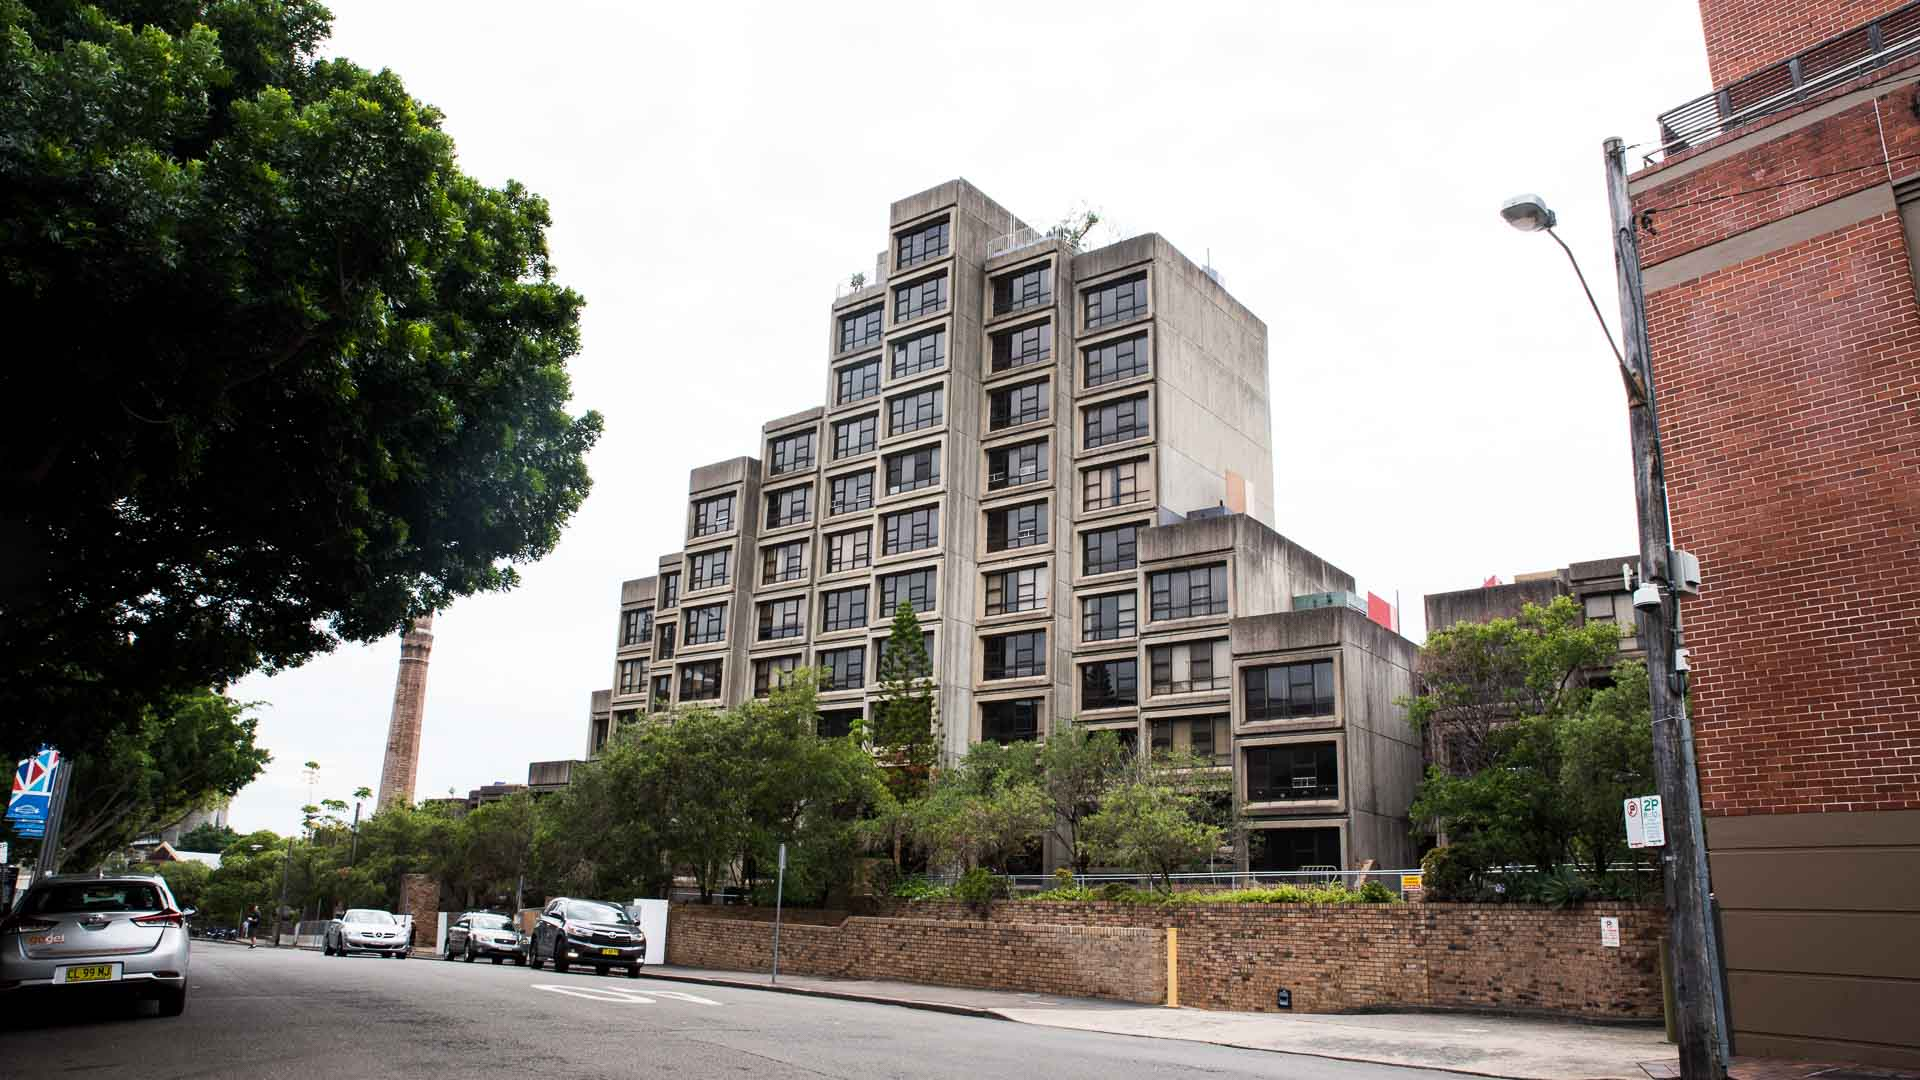 Sydney's Iconic Sirius Building Has Been Sold for $150 Million